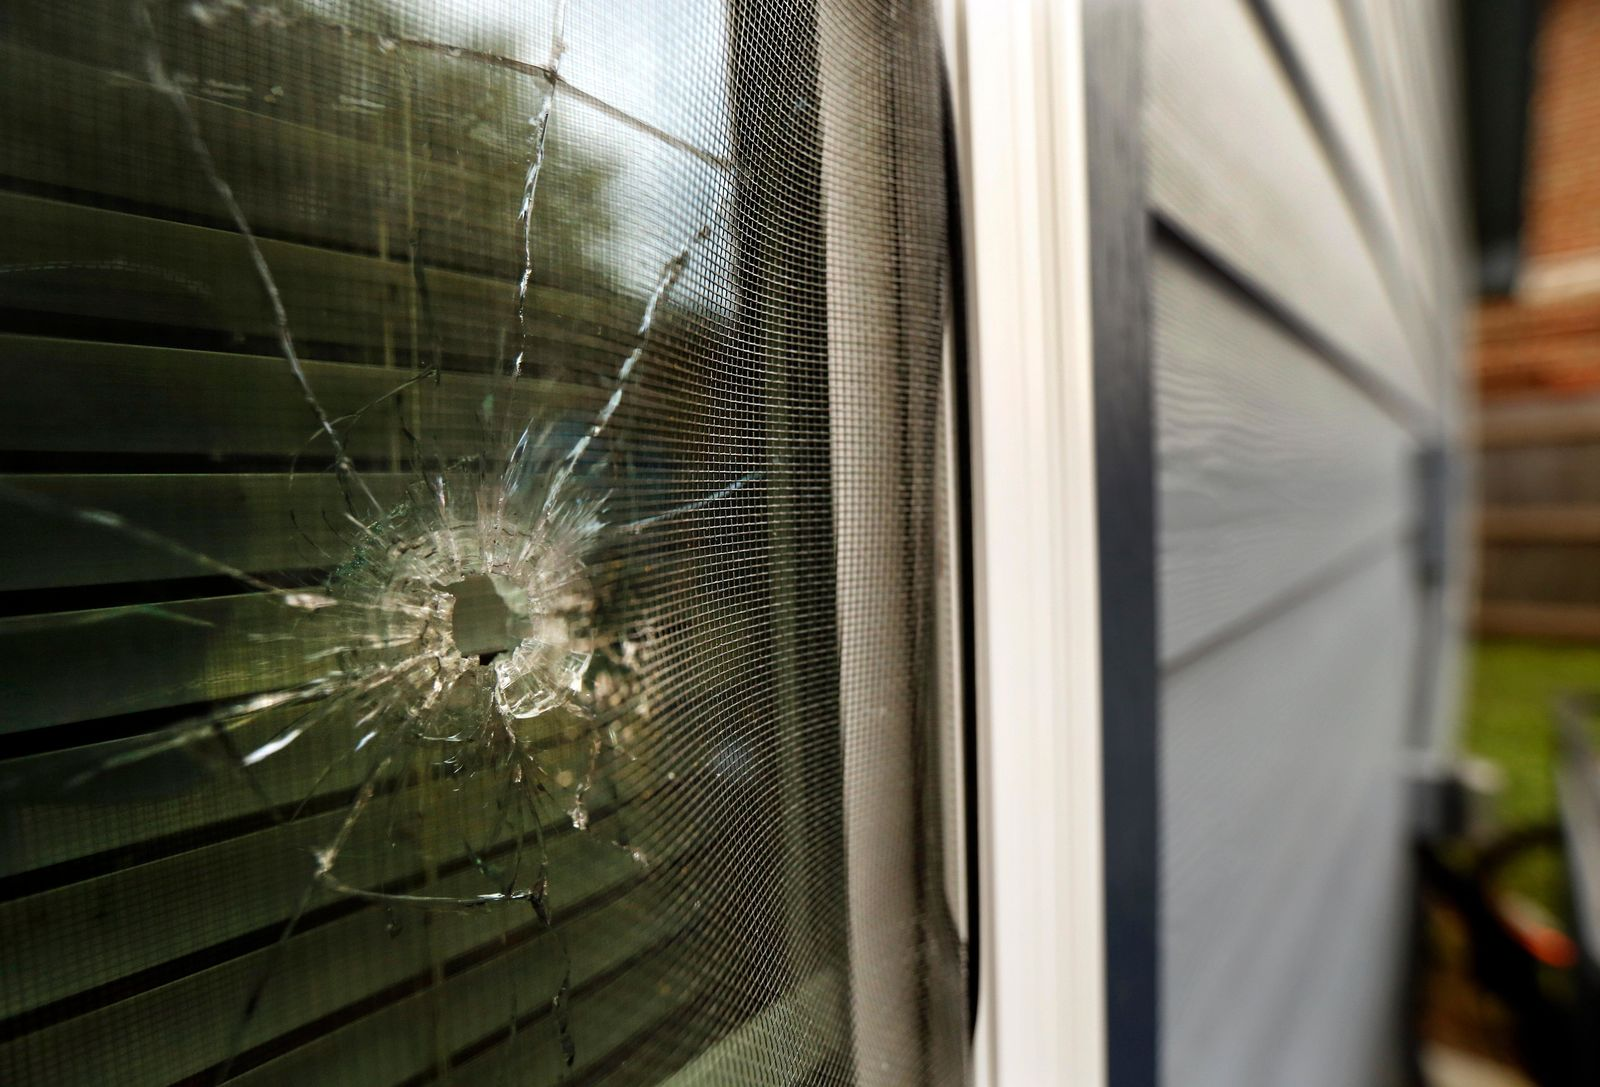 A bullet hole from the police officer's shot is seen in the rear window of Atatiana Jefferson's home on E. Allen Ave in Fort Worth, Texas, Tuesday, Oct. 15, 2019. Jefferson, a black woman, was shot by a white police officer early Saturday, Oct. 12. (Tom Fox/The Dallas Morning News via AP)